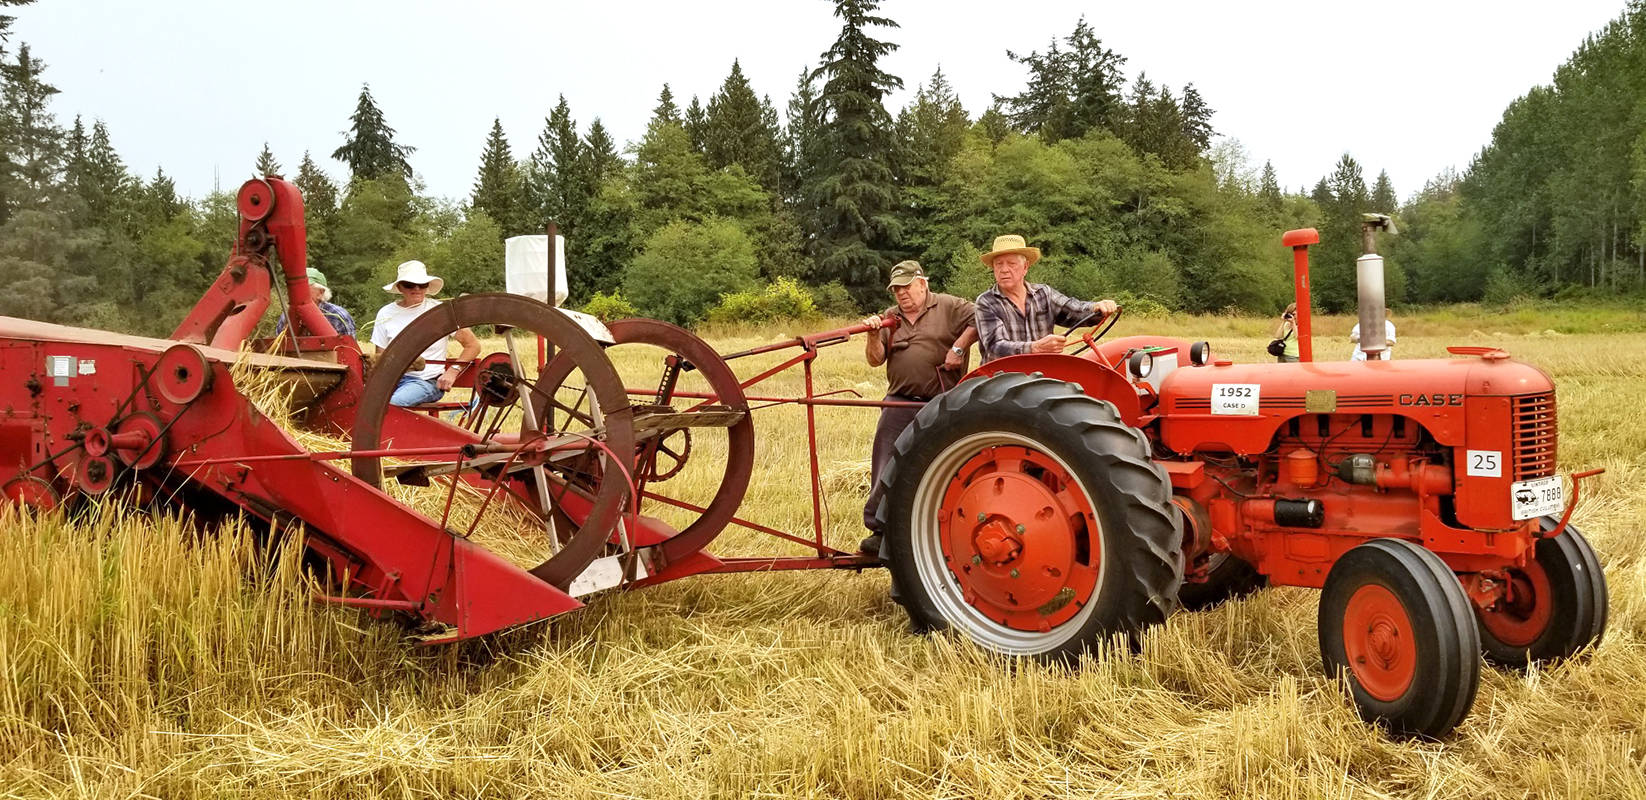 Antique machinery was used to harvest barley at MacInnes Farms on Saturday. Photo courtesy Syd Pickerell